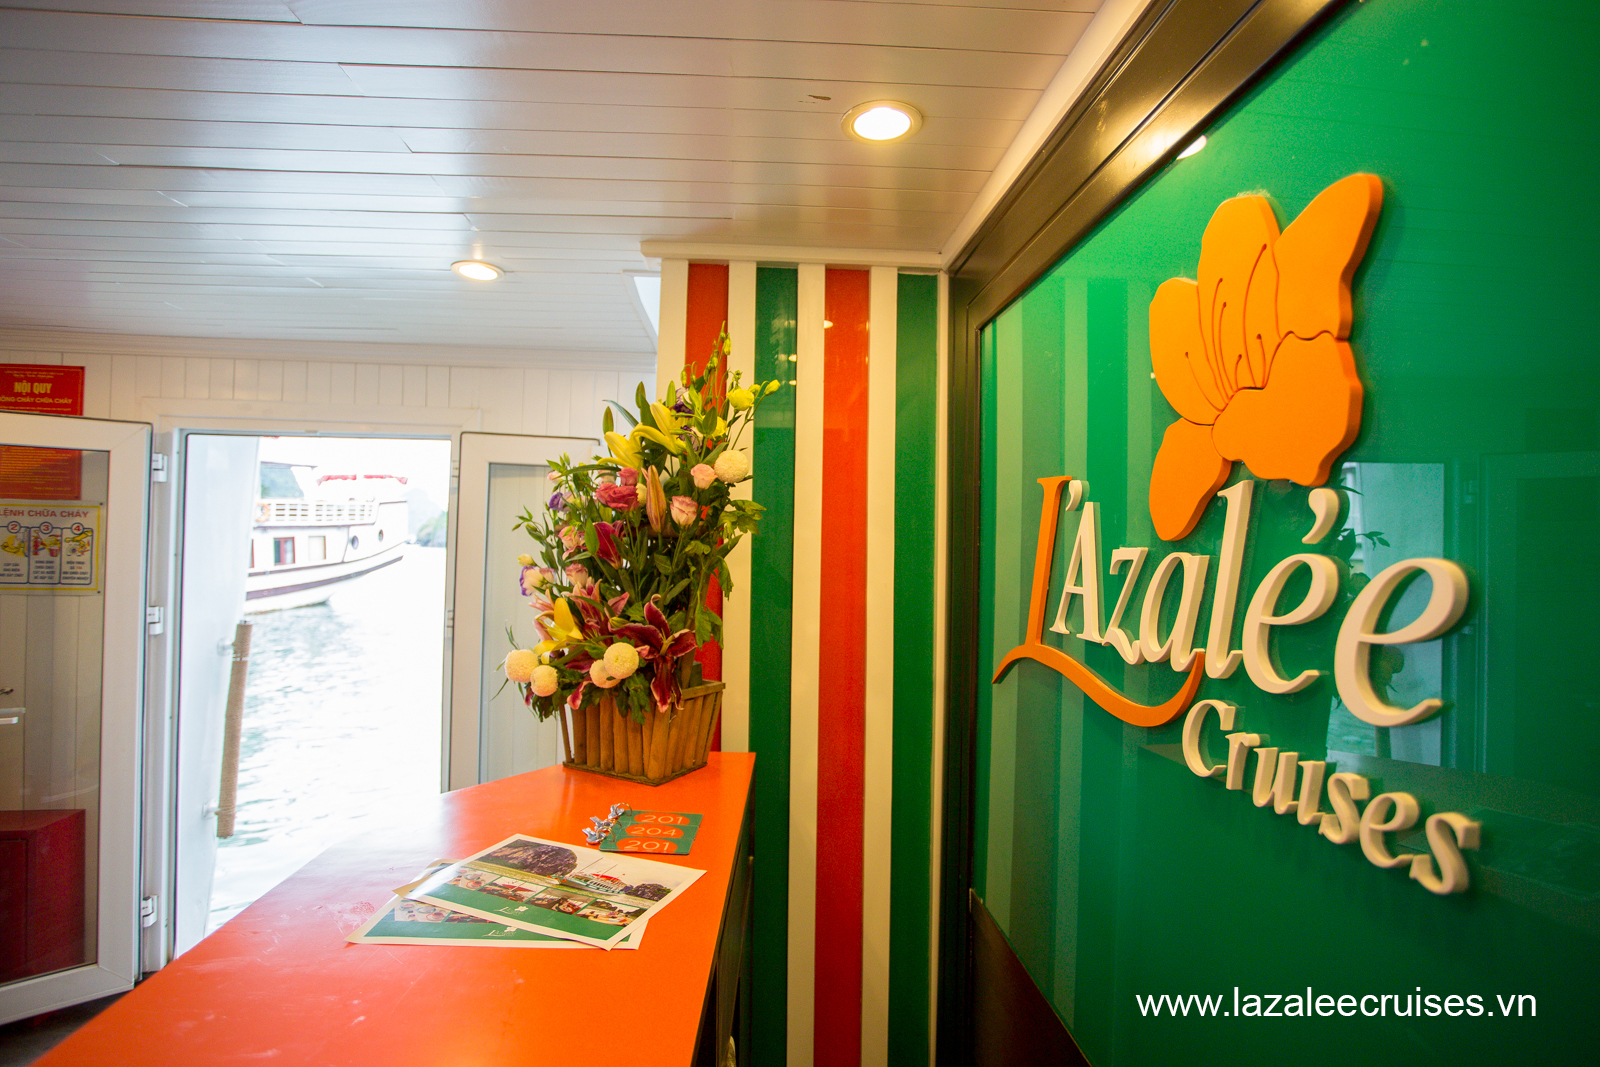 L'Azalee Cruises_Overnight Cruise_Overview_Reception on board  (2).jpg